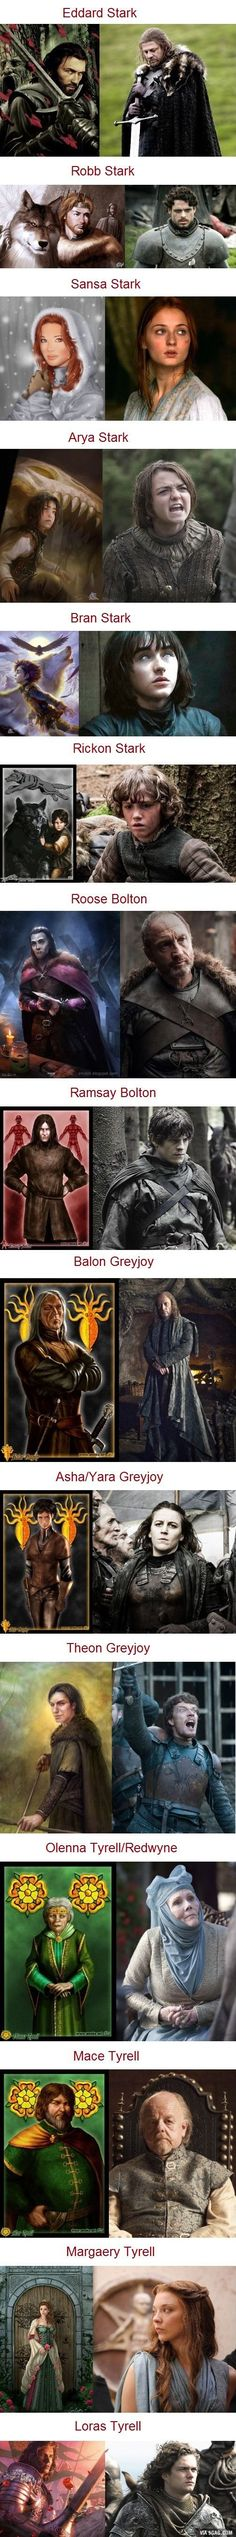 Game of Thrones Characters: In the Books vs. On the Show Part 2: